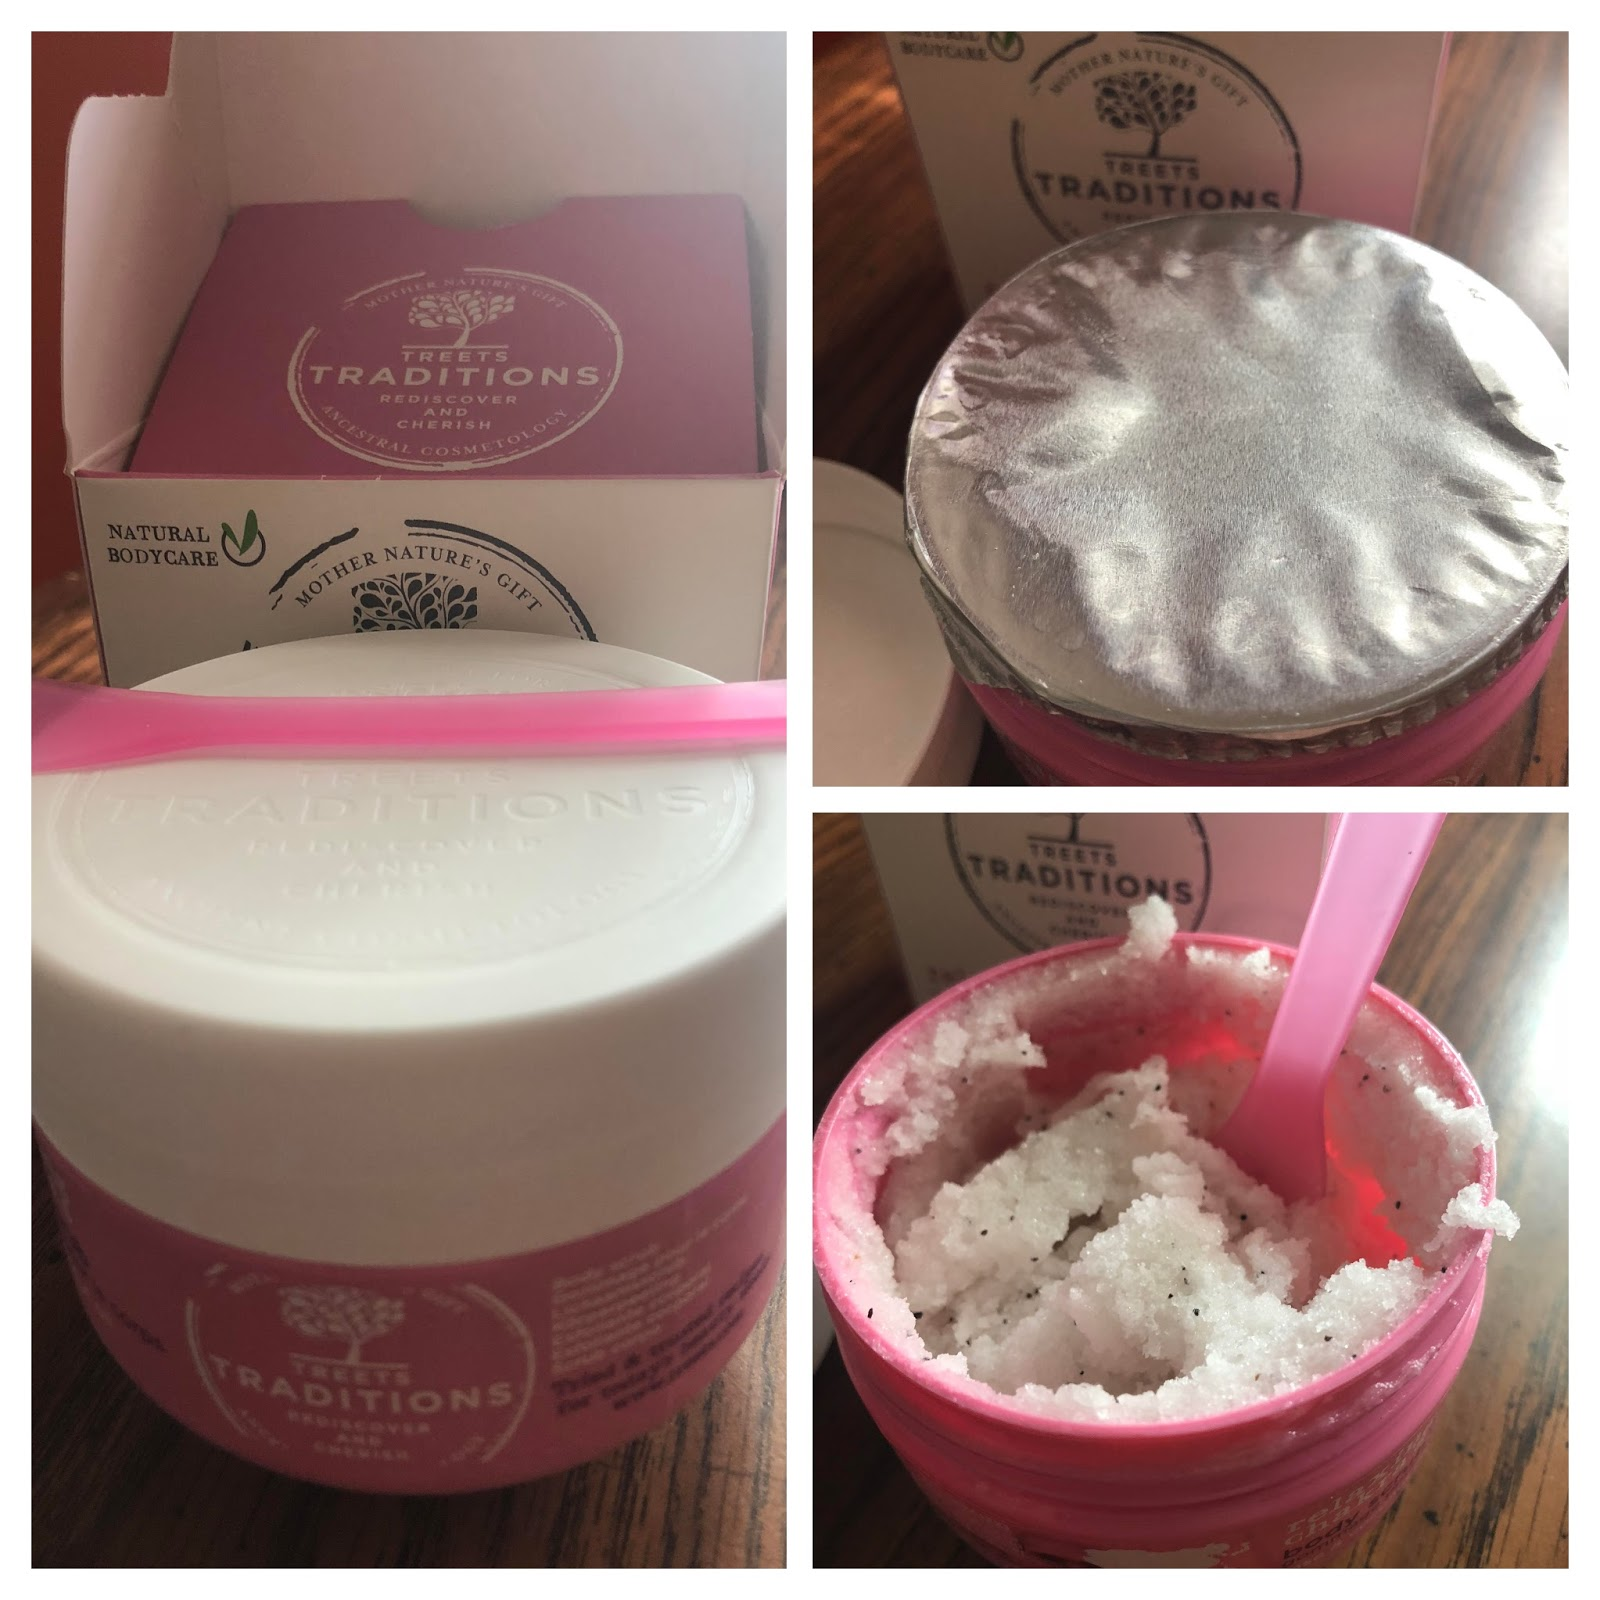 6c6fea1feb894 Pamper Yourself with Treets Traditions Relaxing Chakra s Body Scrub ...